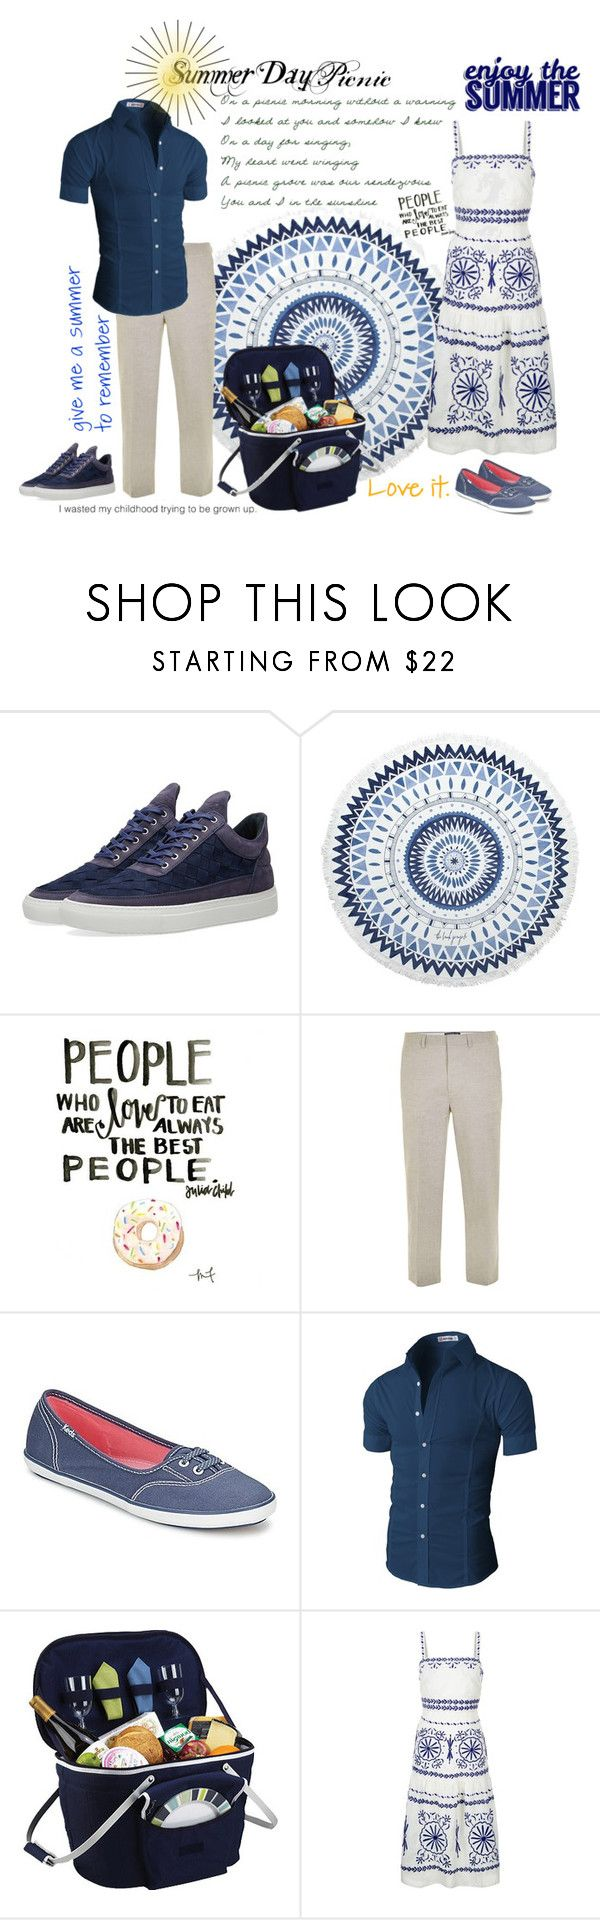 """""""Romantic Picnic - Summer Dress"""" by foreevers ❤ liked on Polyvore featuring Filling Pieces, The Beach People, Topman, Keds, Picnic at Ascot and Monsoon"""